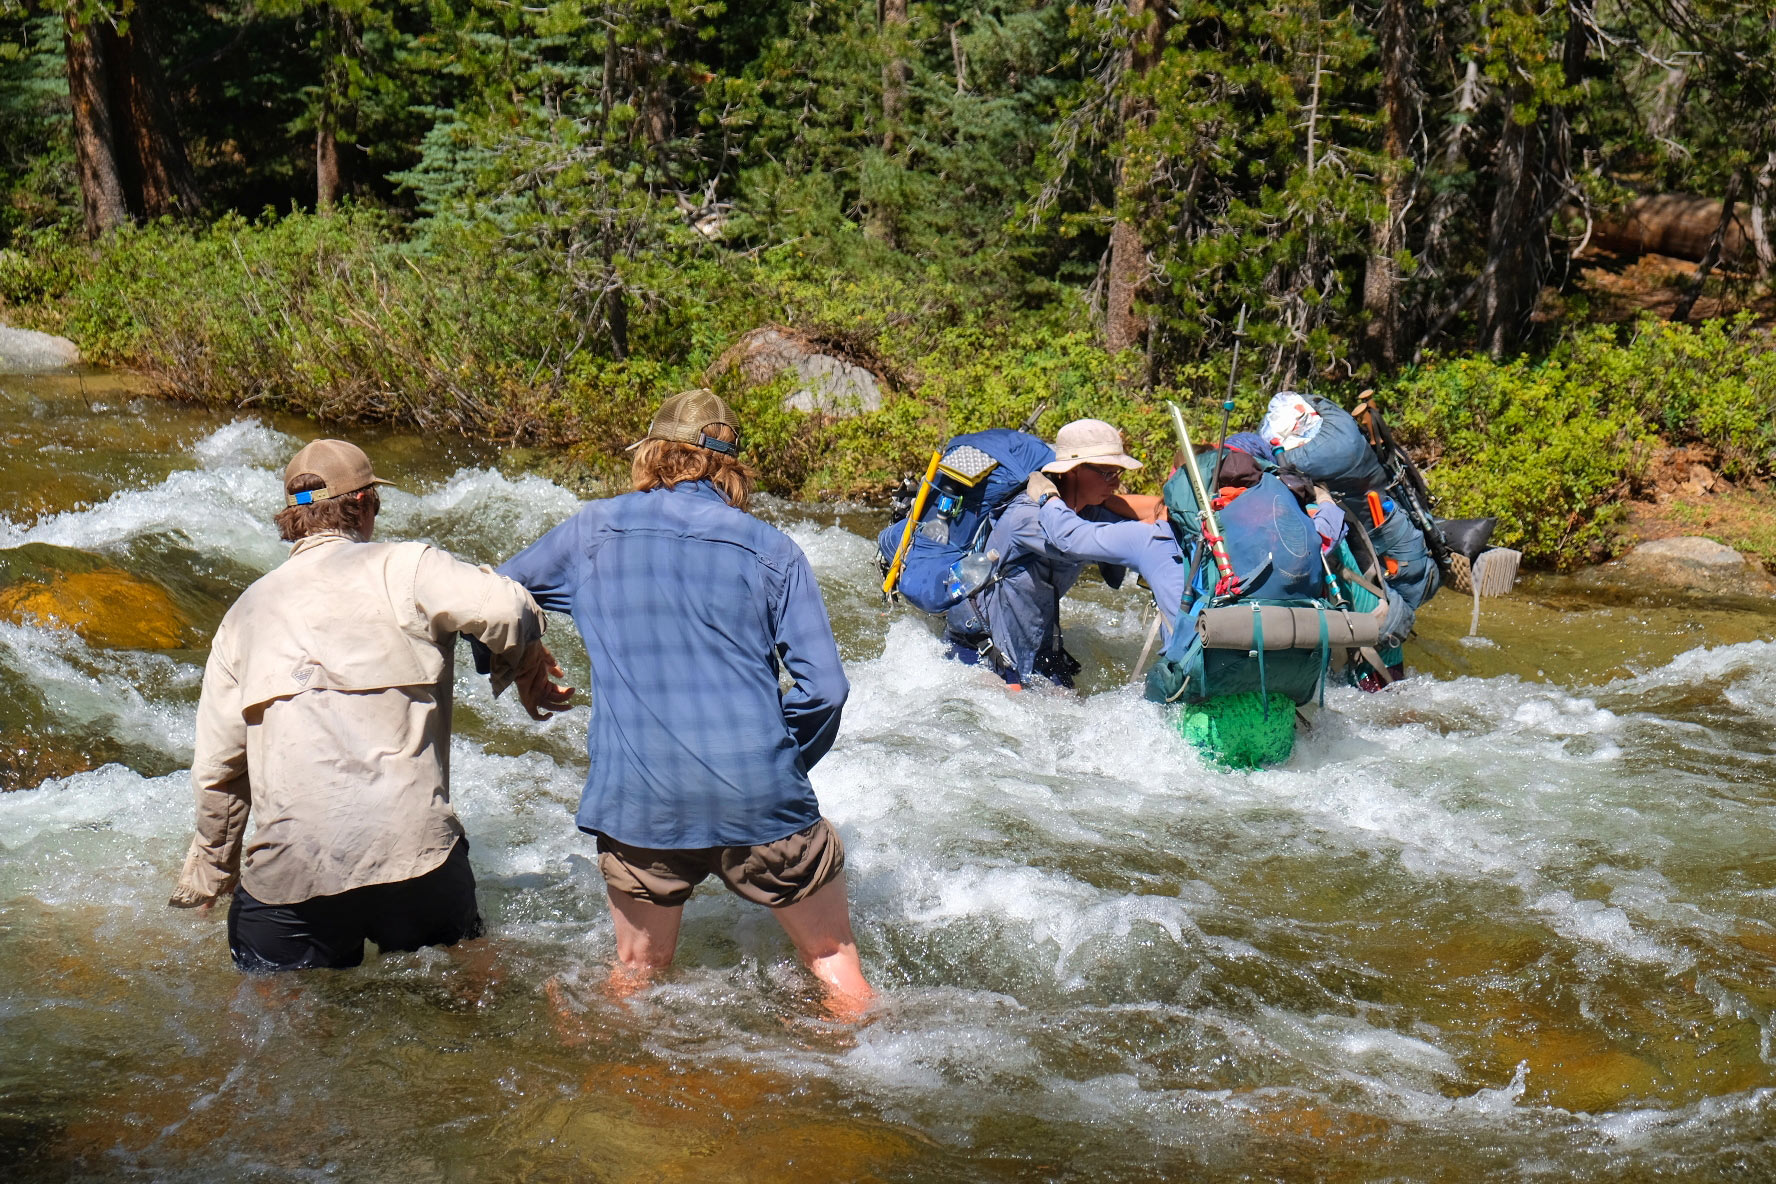 stream crossing safety advice for hikers and backpackers